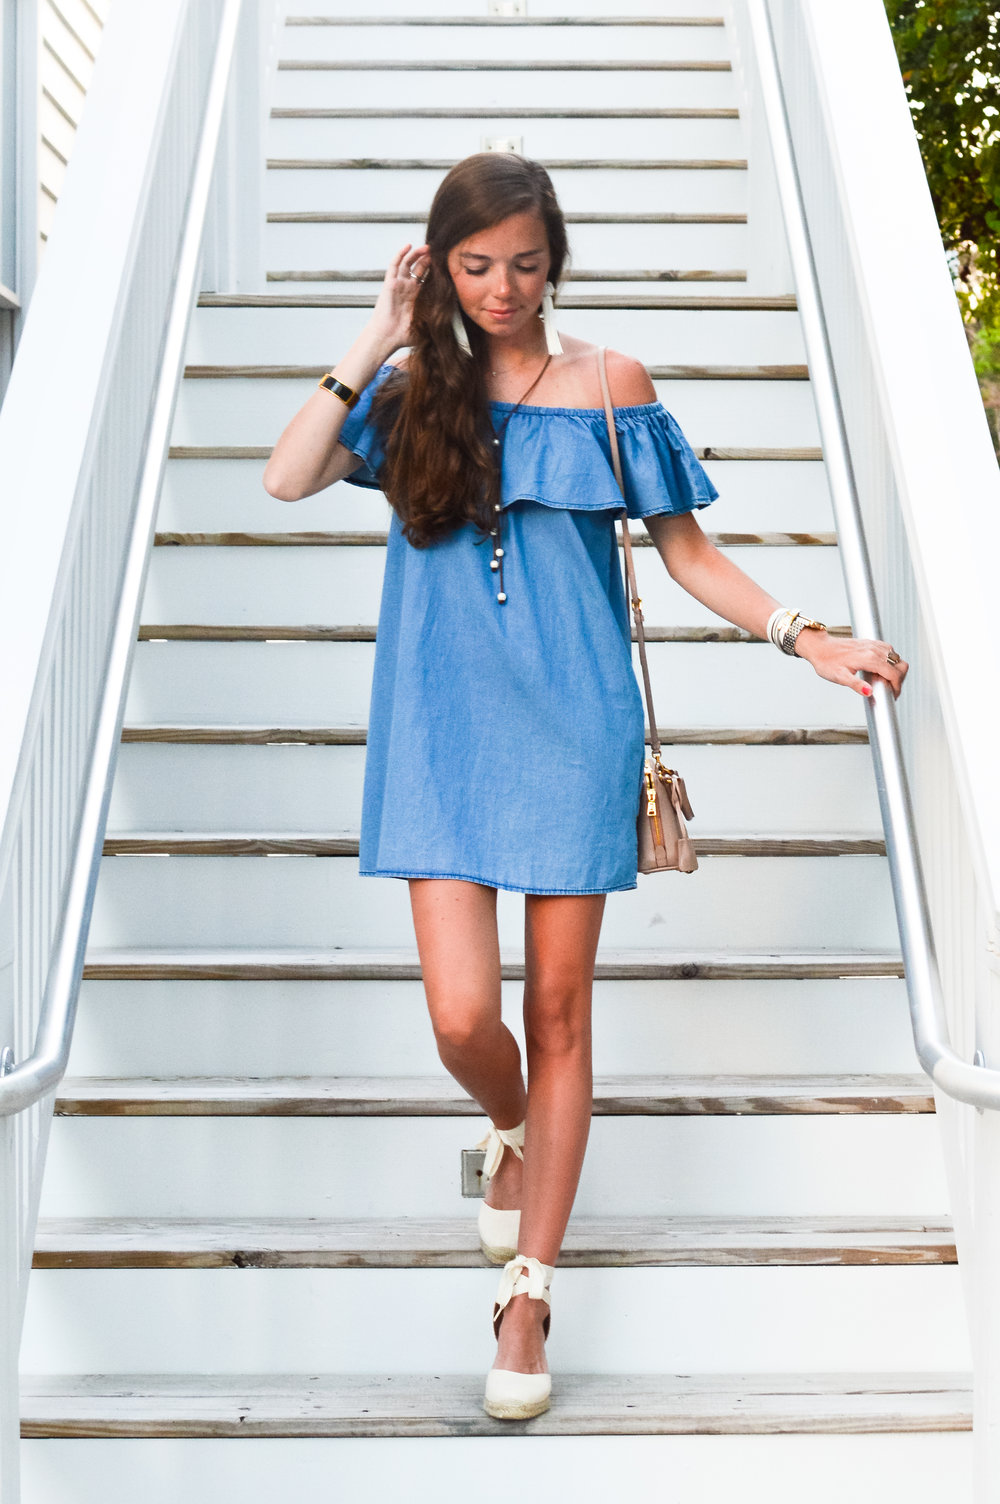 lcb_style_fashion_blogger_off the shoulder dress (7 of 18) copy.jpg